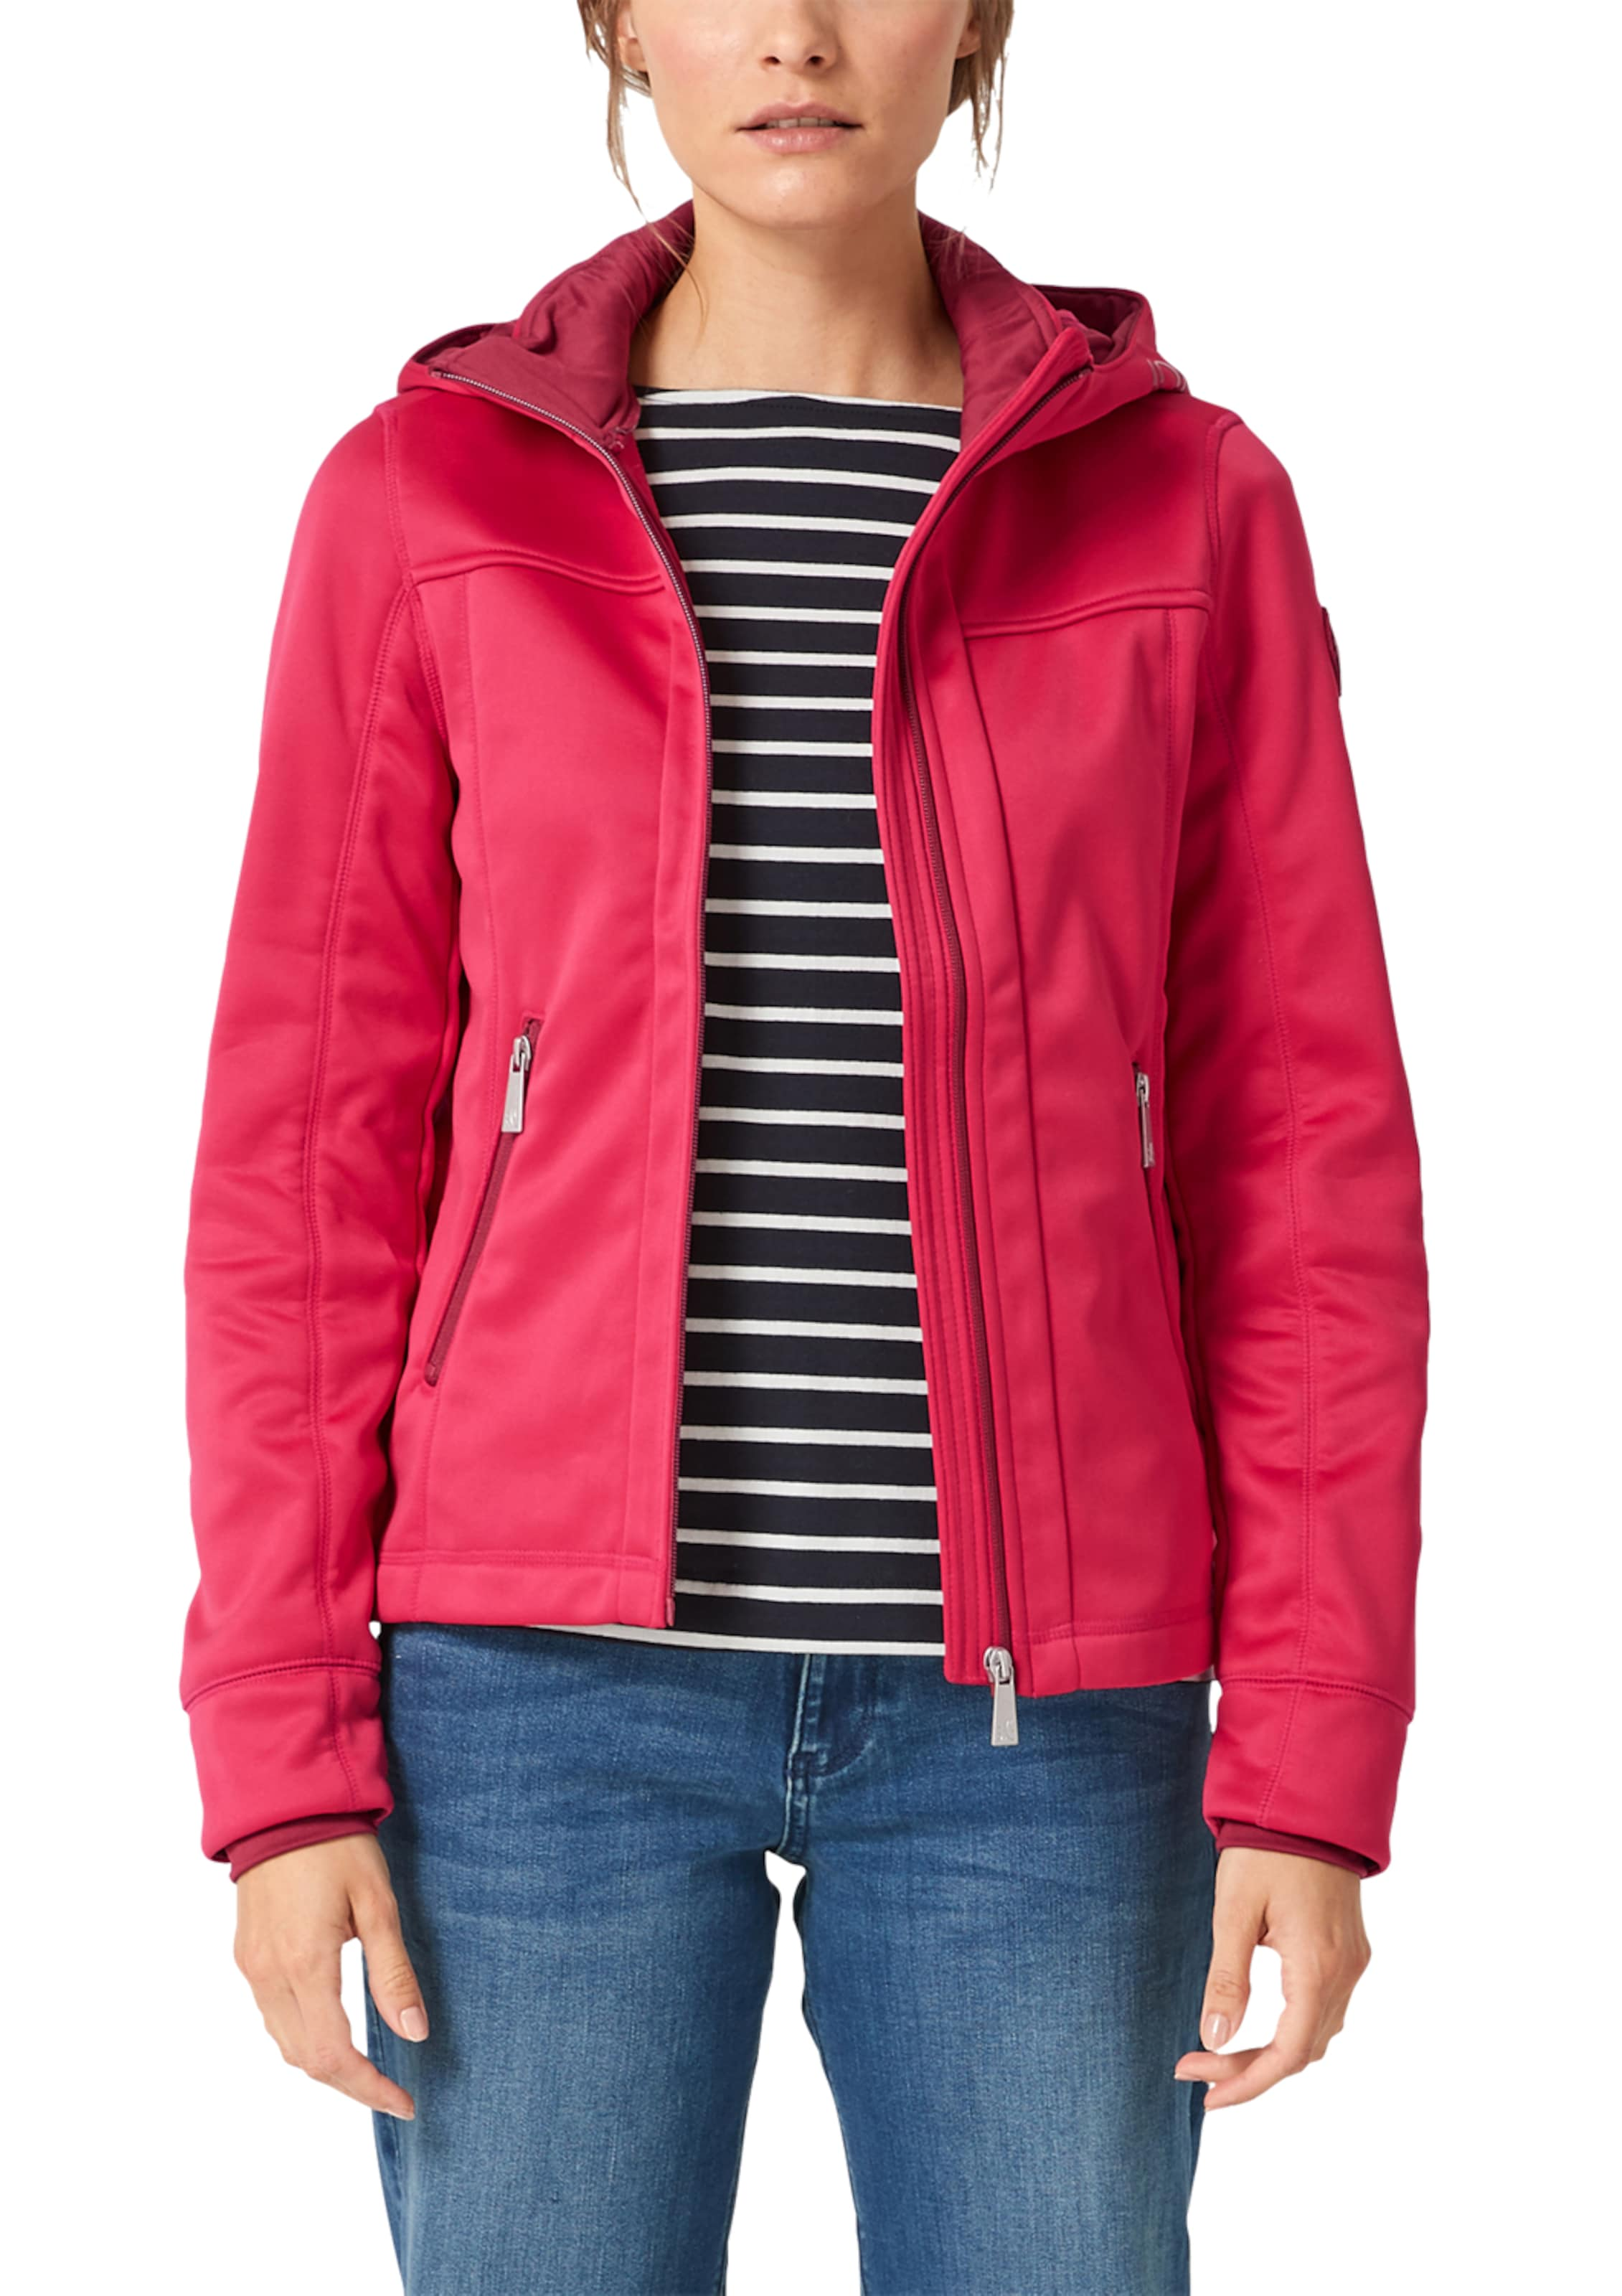 Red Jacke oliver In Pink S Label H9IWED2